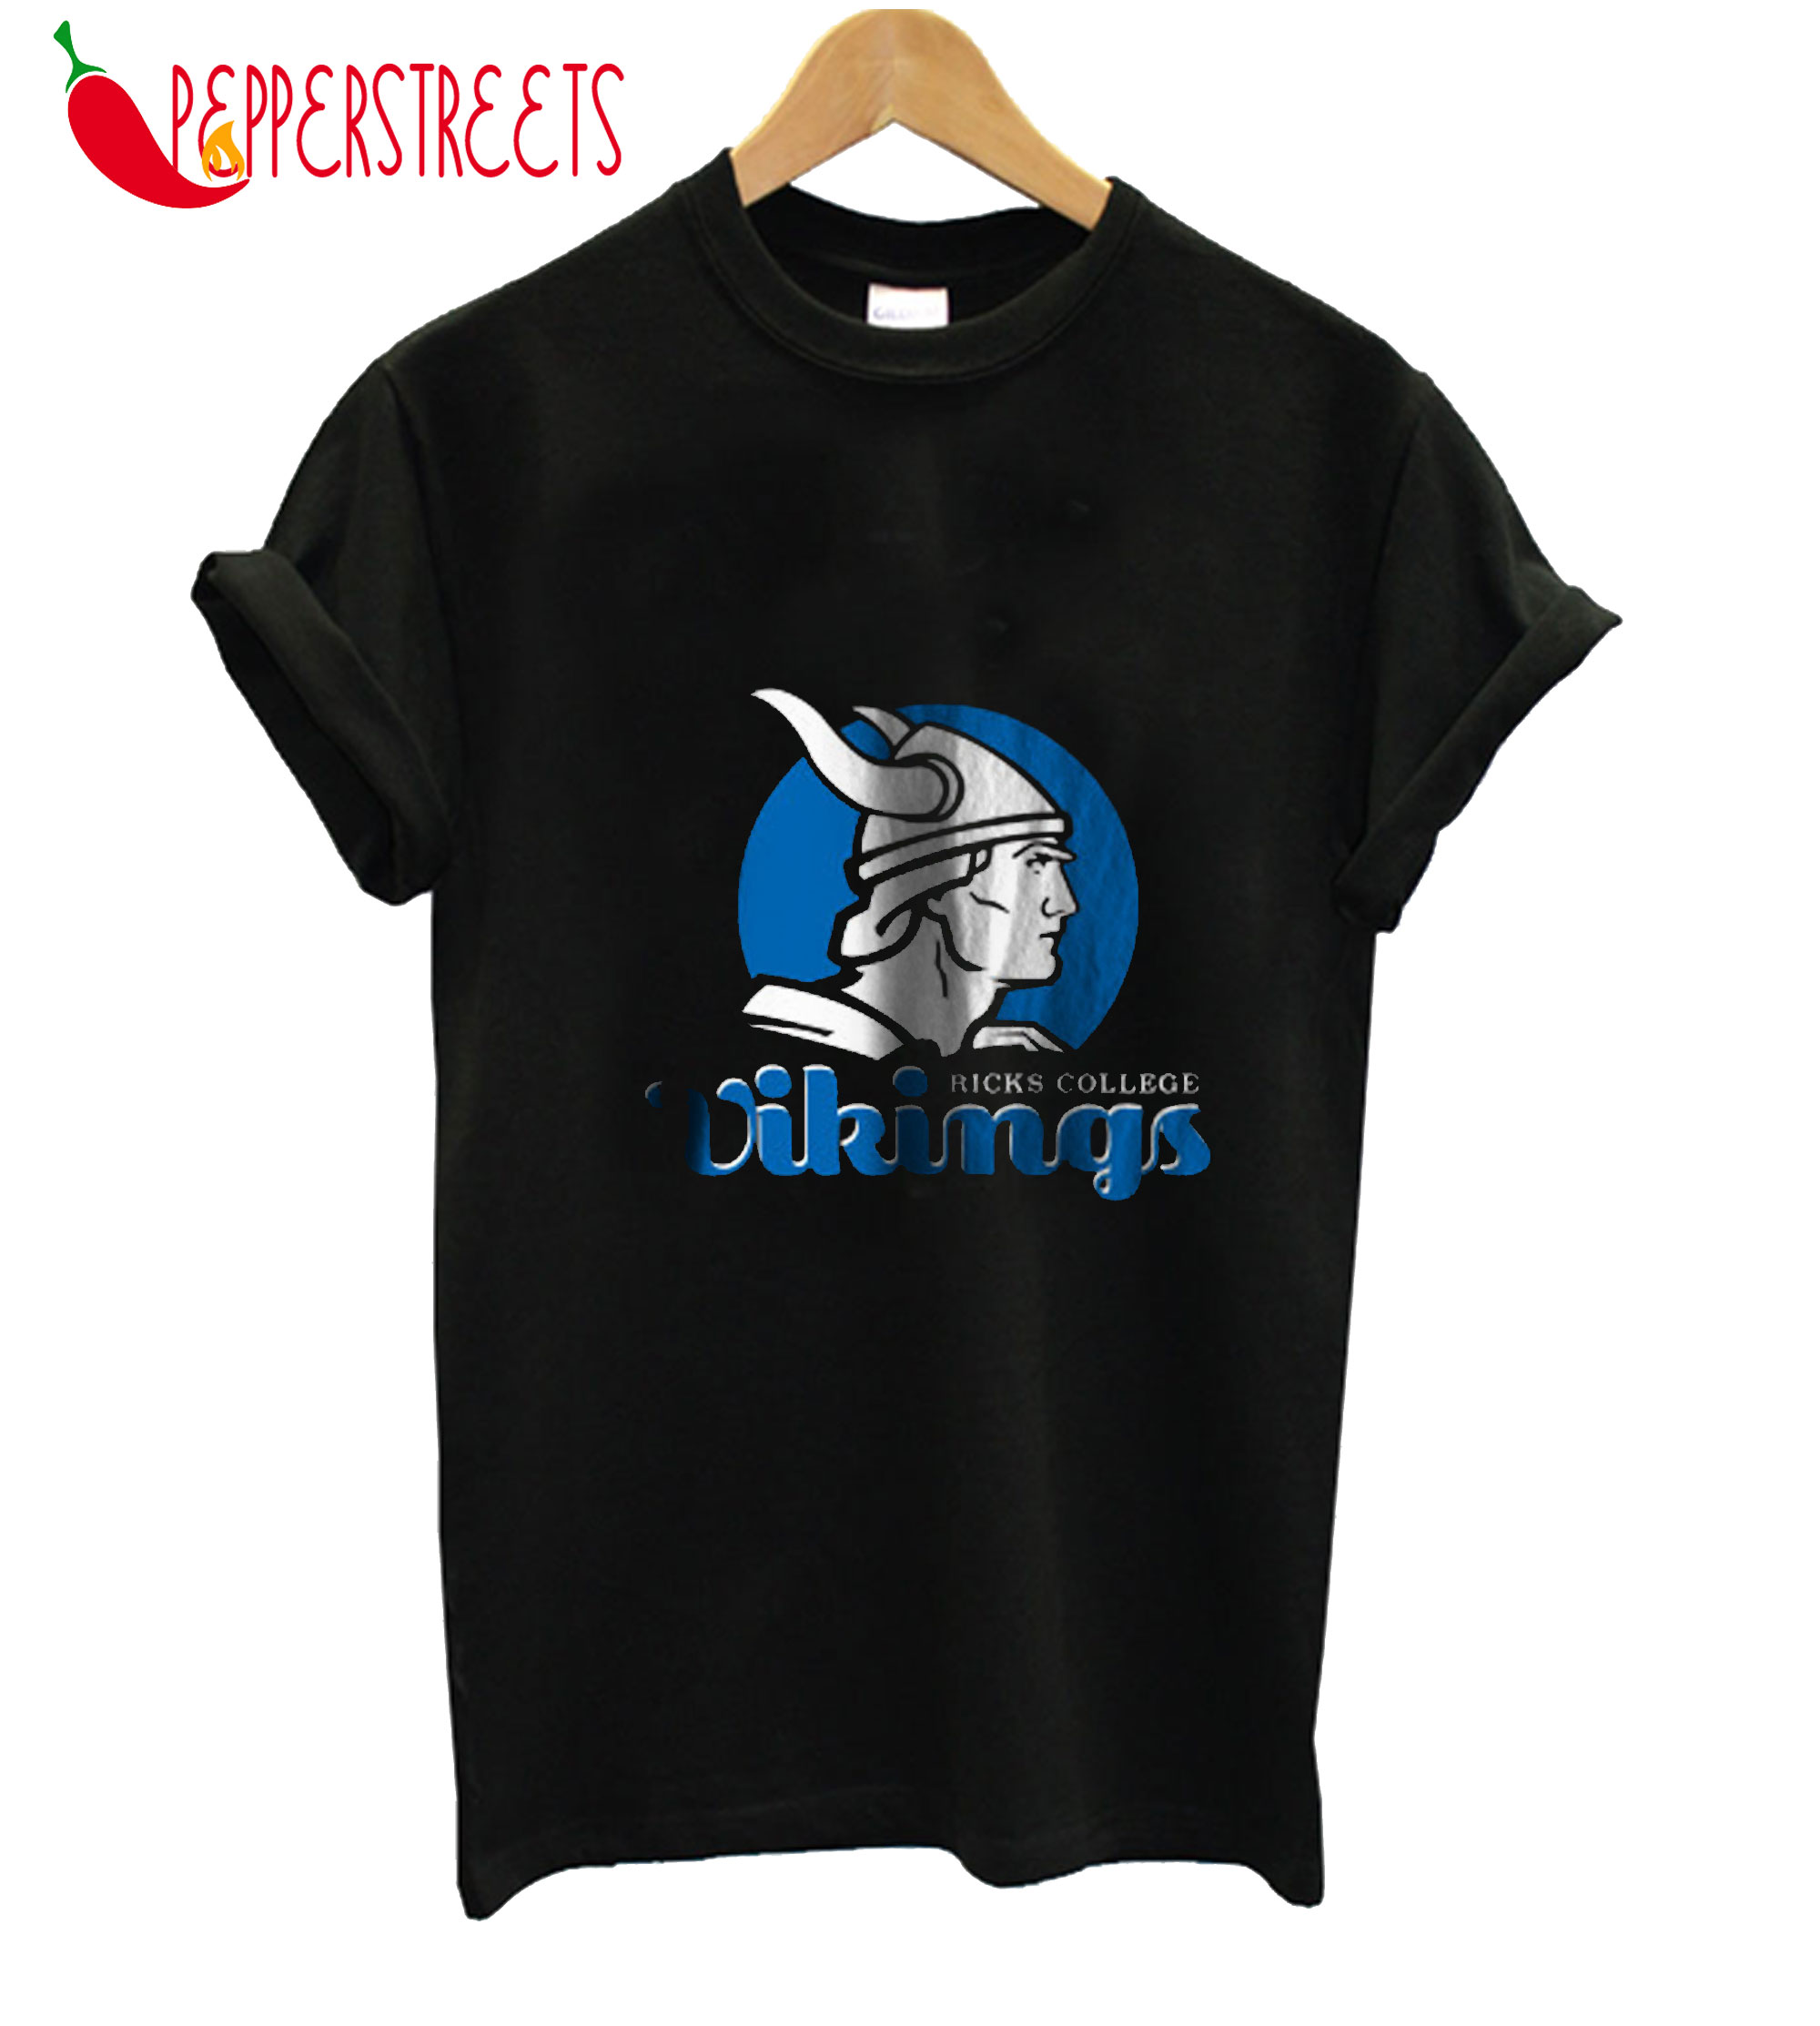 Ricks College Vikings T-Shirt